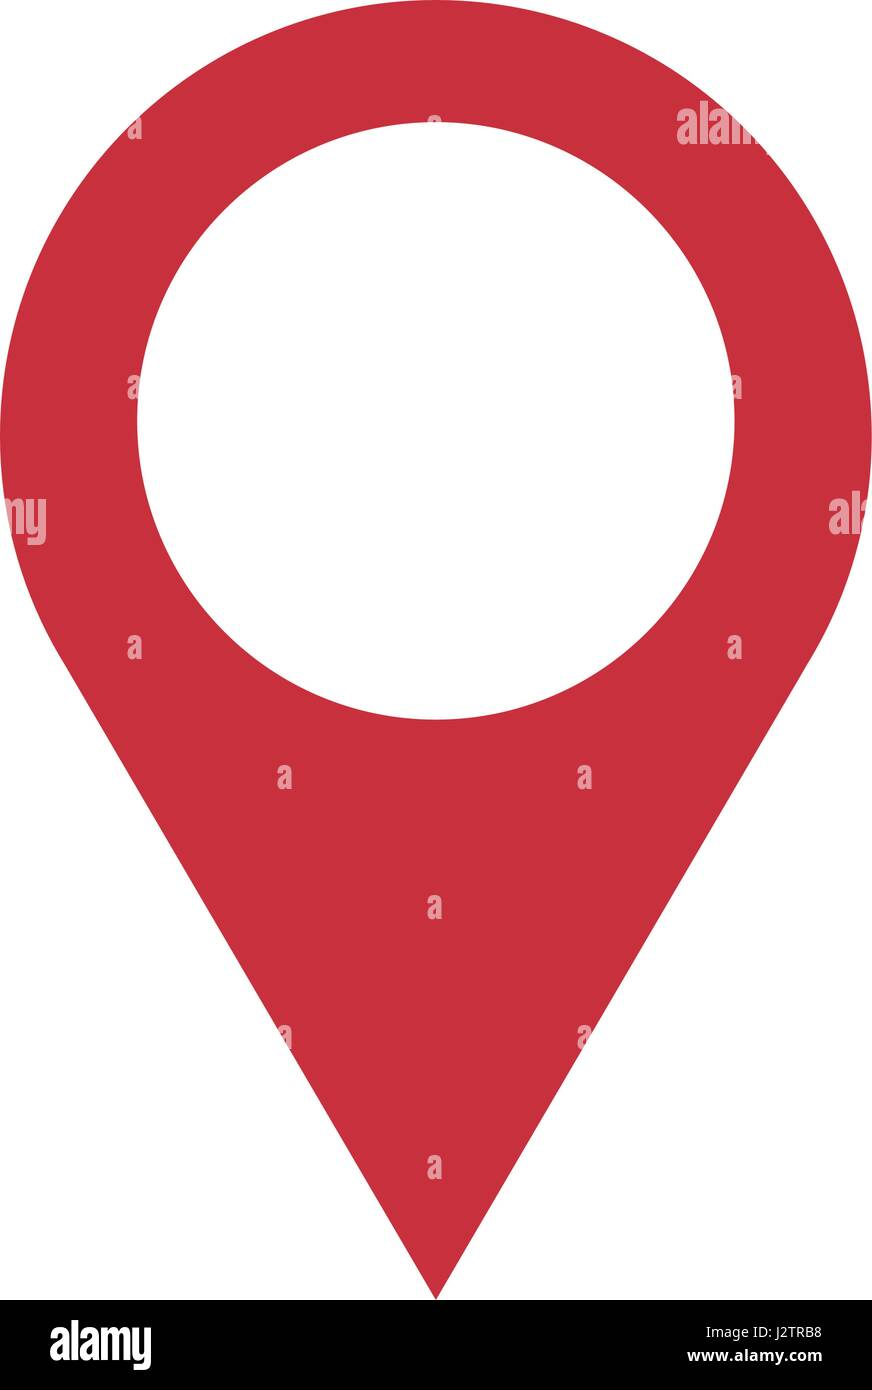 pin map navigation localization icon image - Stock Vector